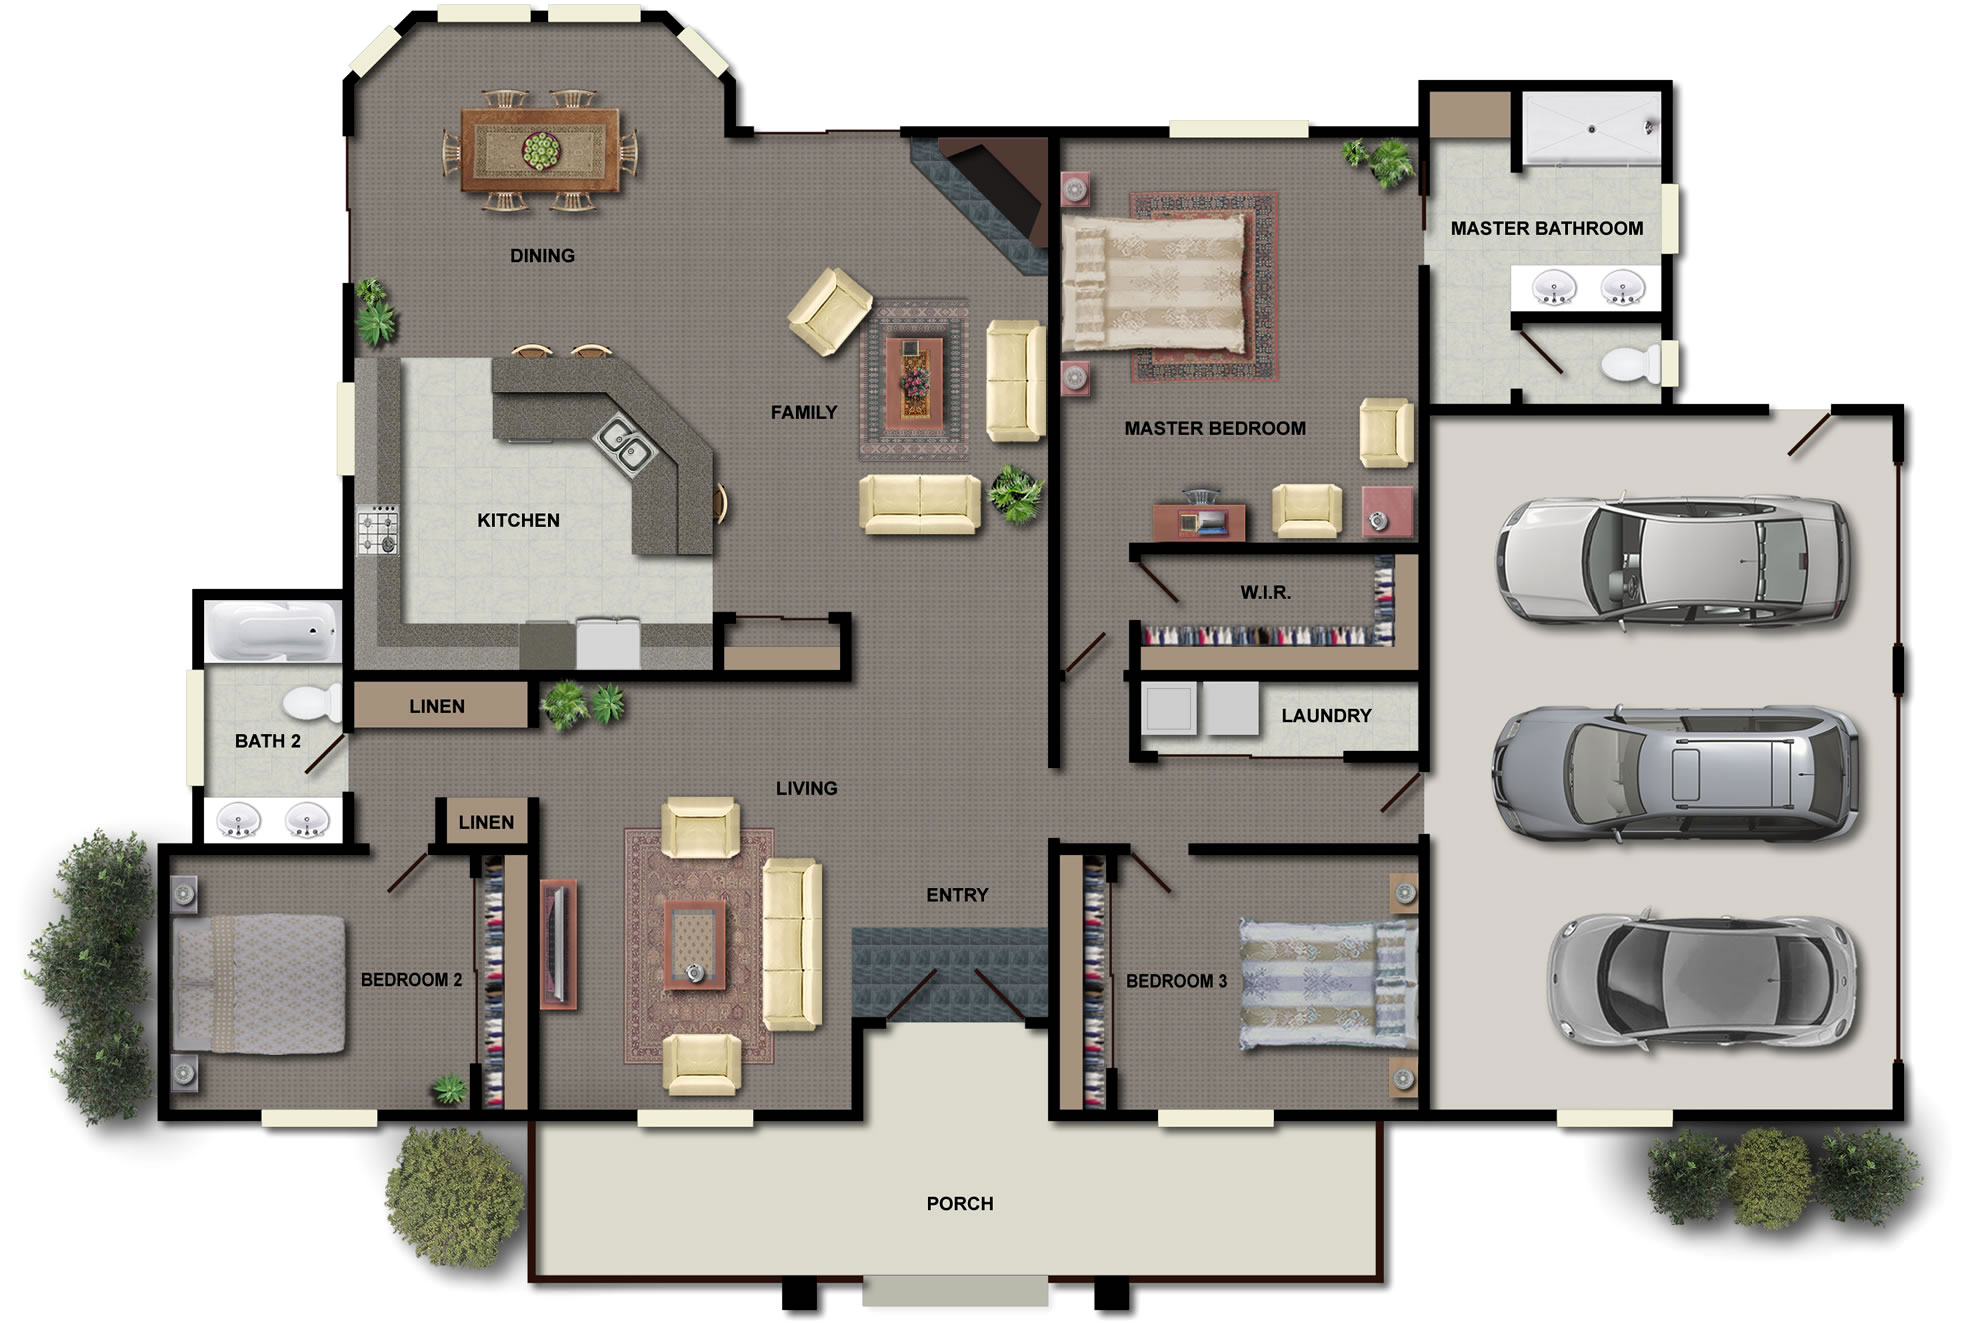 Wonderful New Home Plan Design Idea For New Family